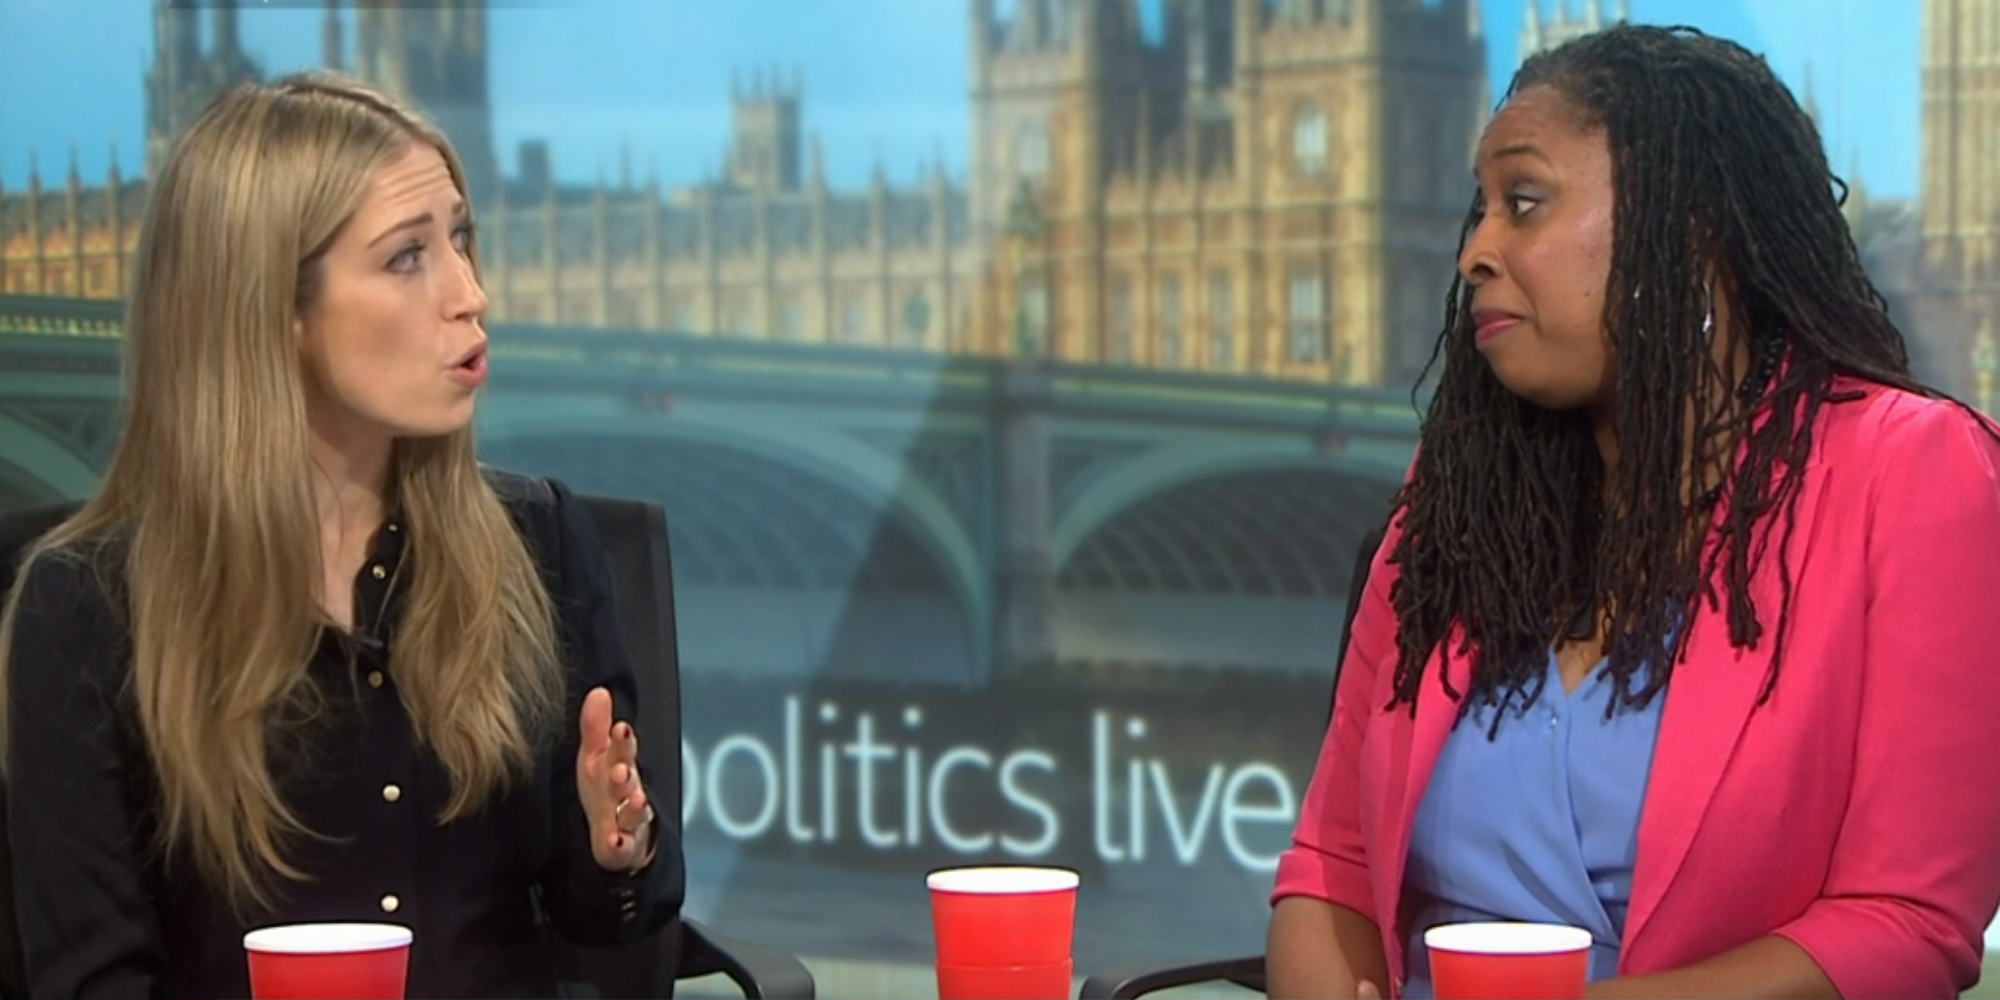 This Tory MP just called Dawn Butler 'rude' and 'offensive' for calling out Boris Johnson's racism